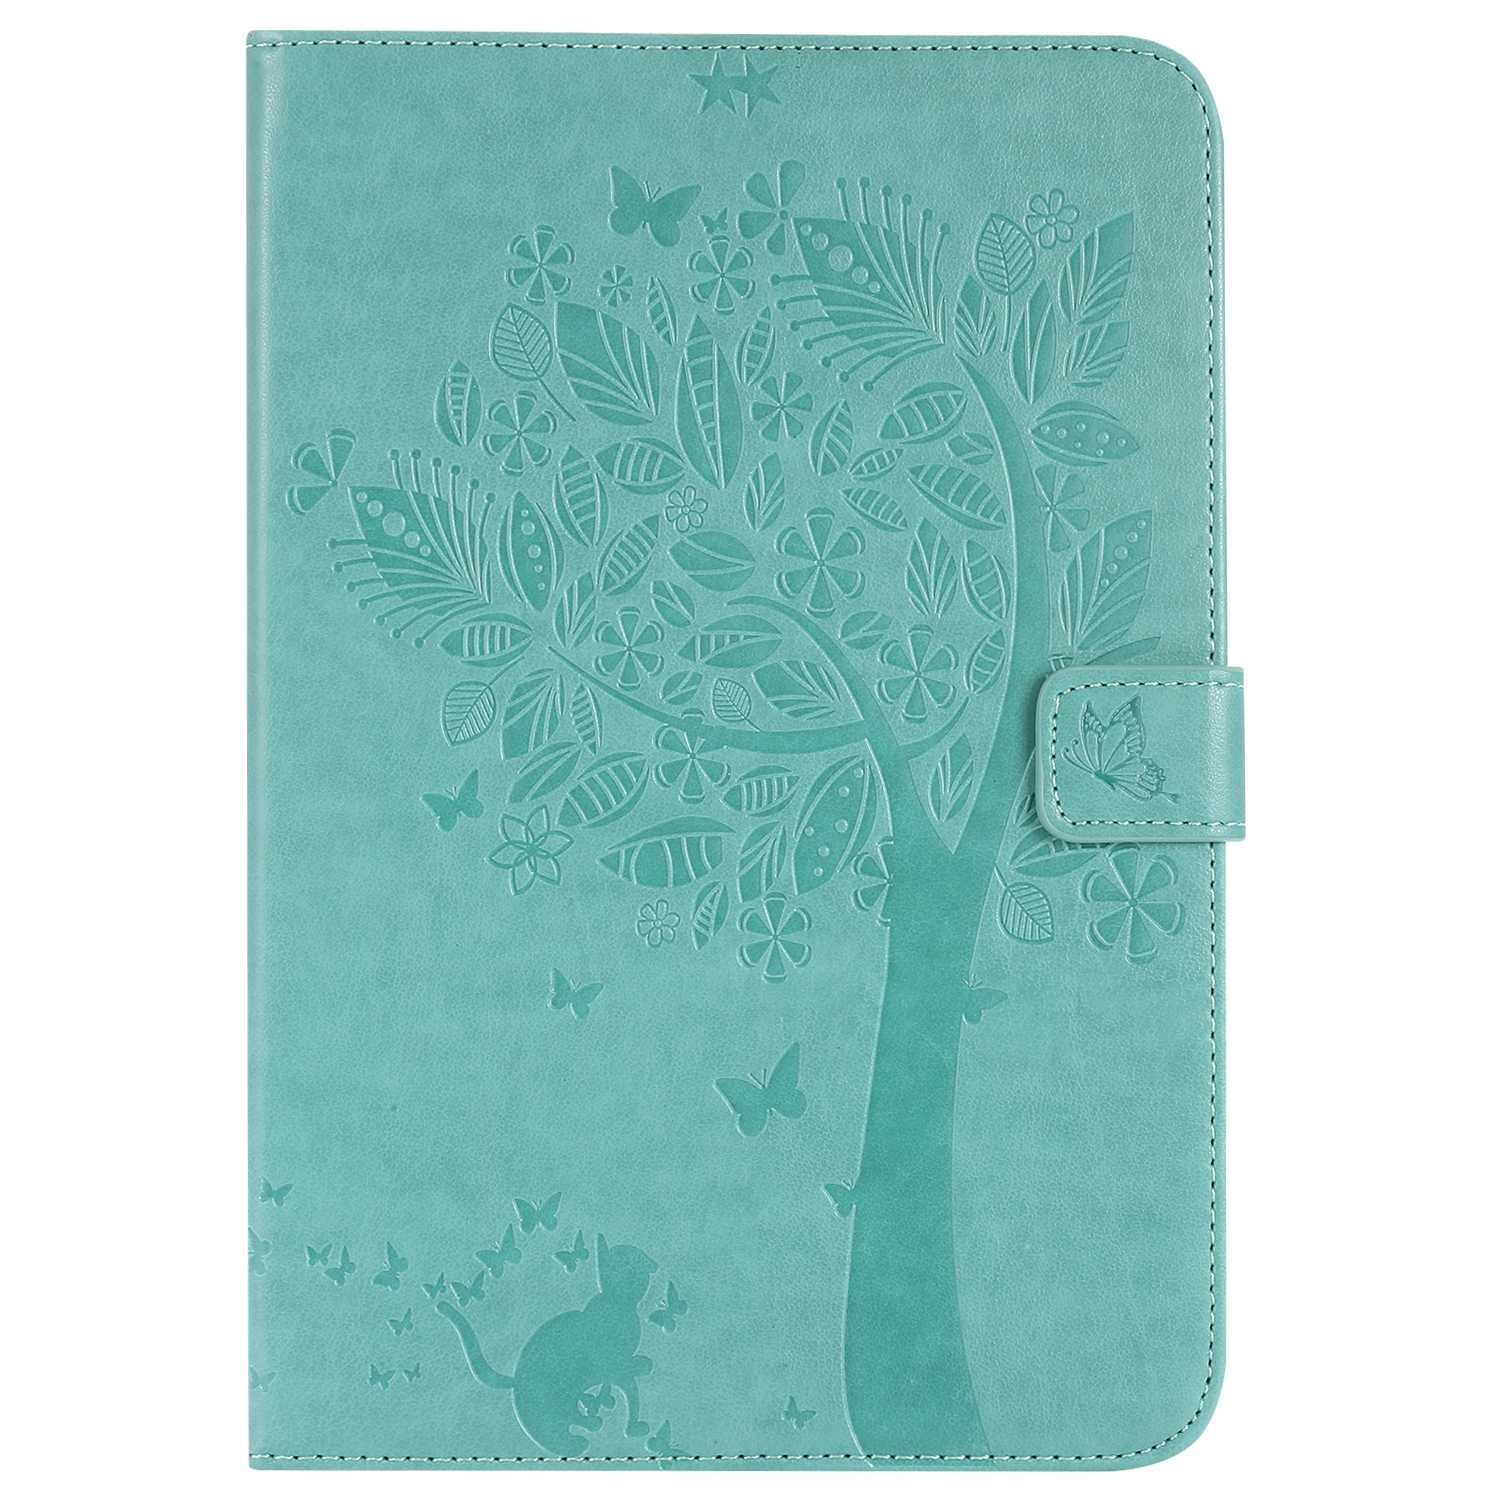 Bear Village Galaxy Tab a 8.0 Inch Case, Leather Magnetic Case, Fullbody Protective Cover with Stand Function for Samsung Galaxy Tab a 8.0 Inch, Green by Bear Village